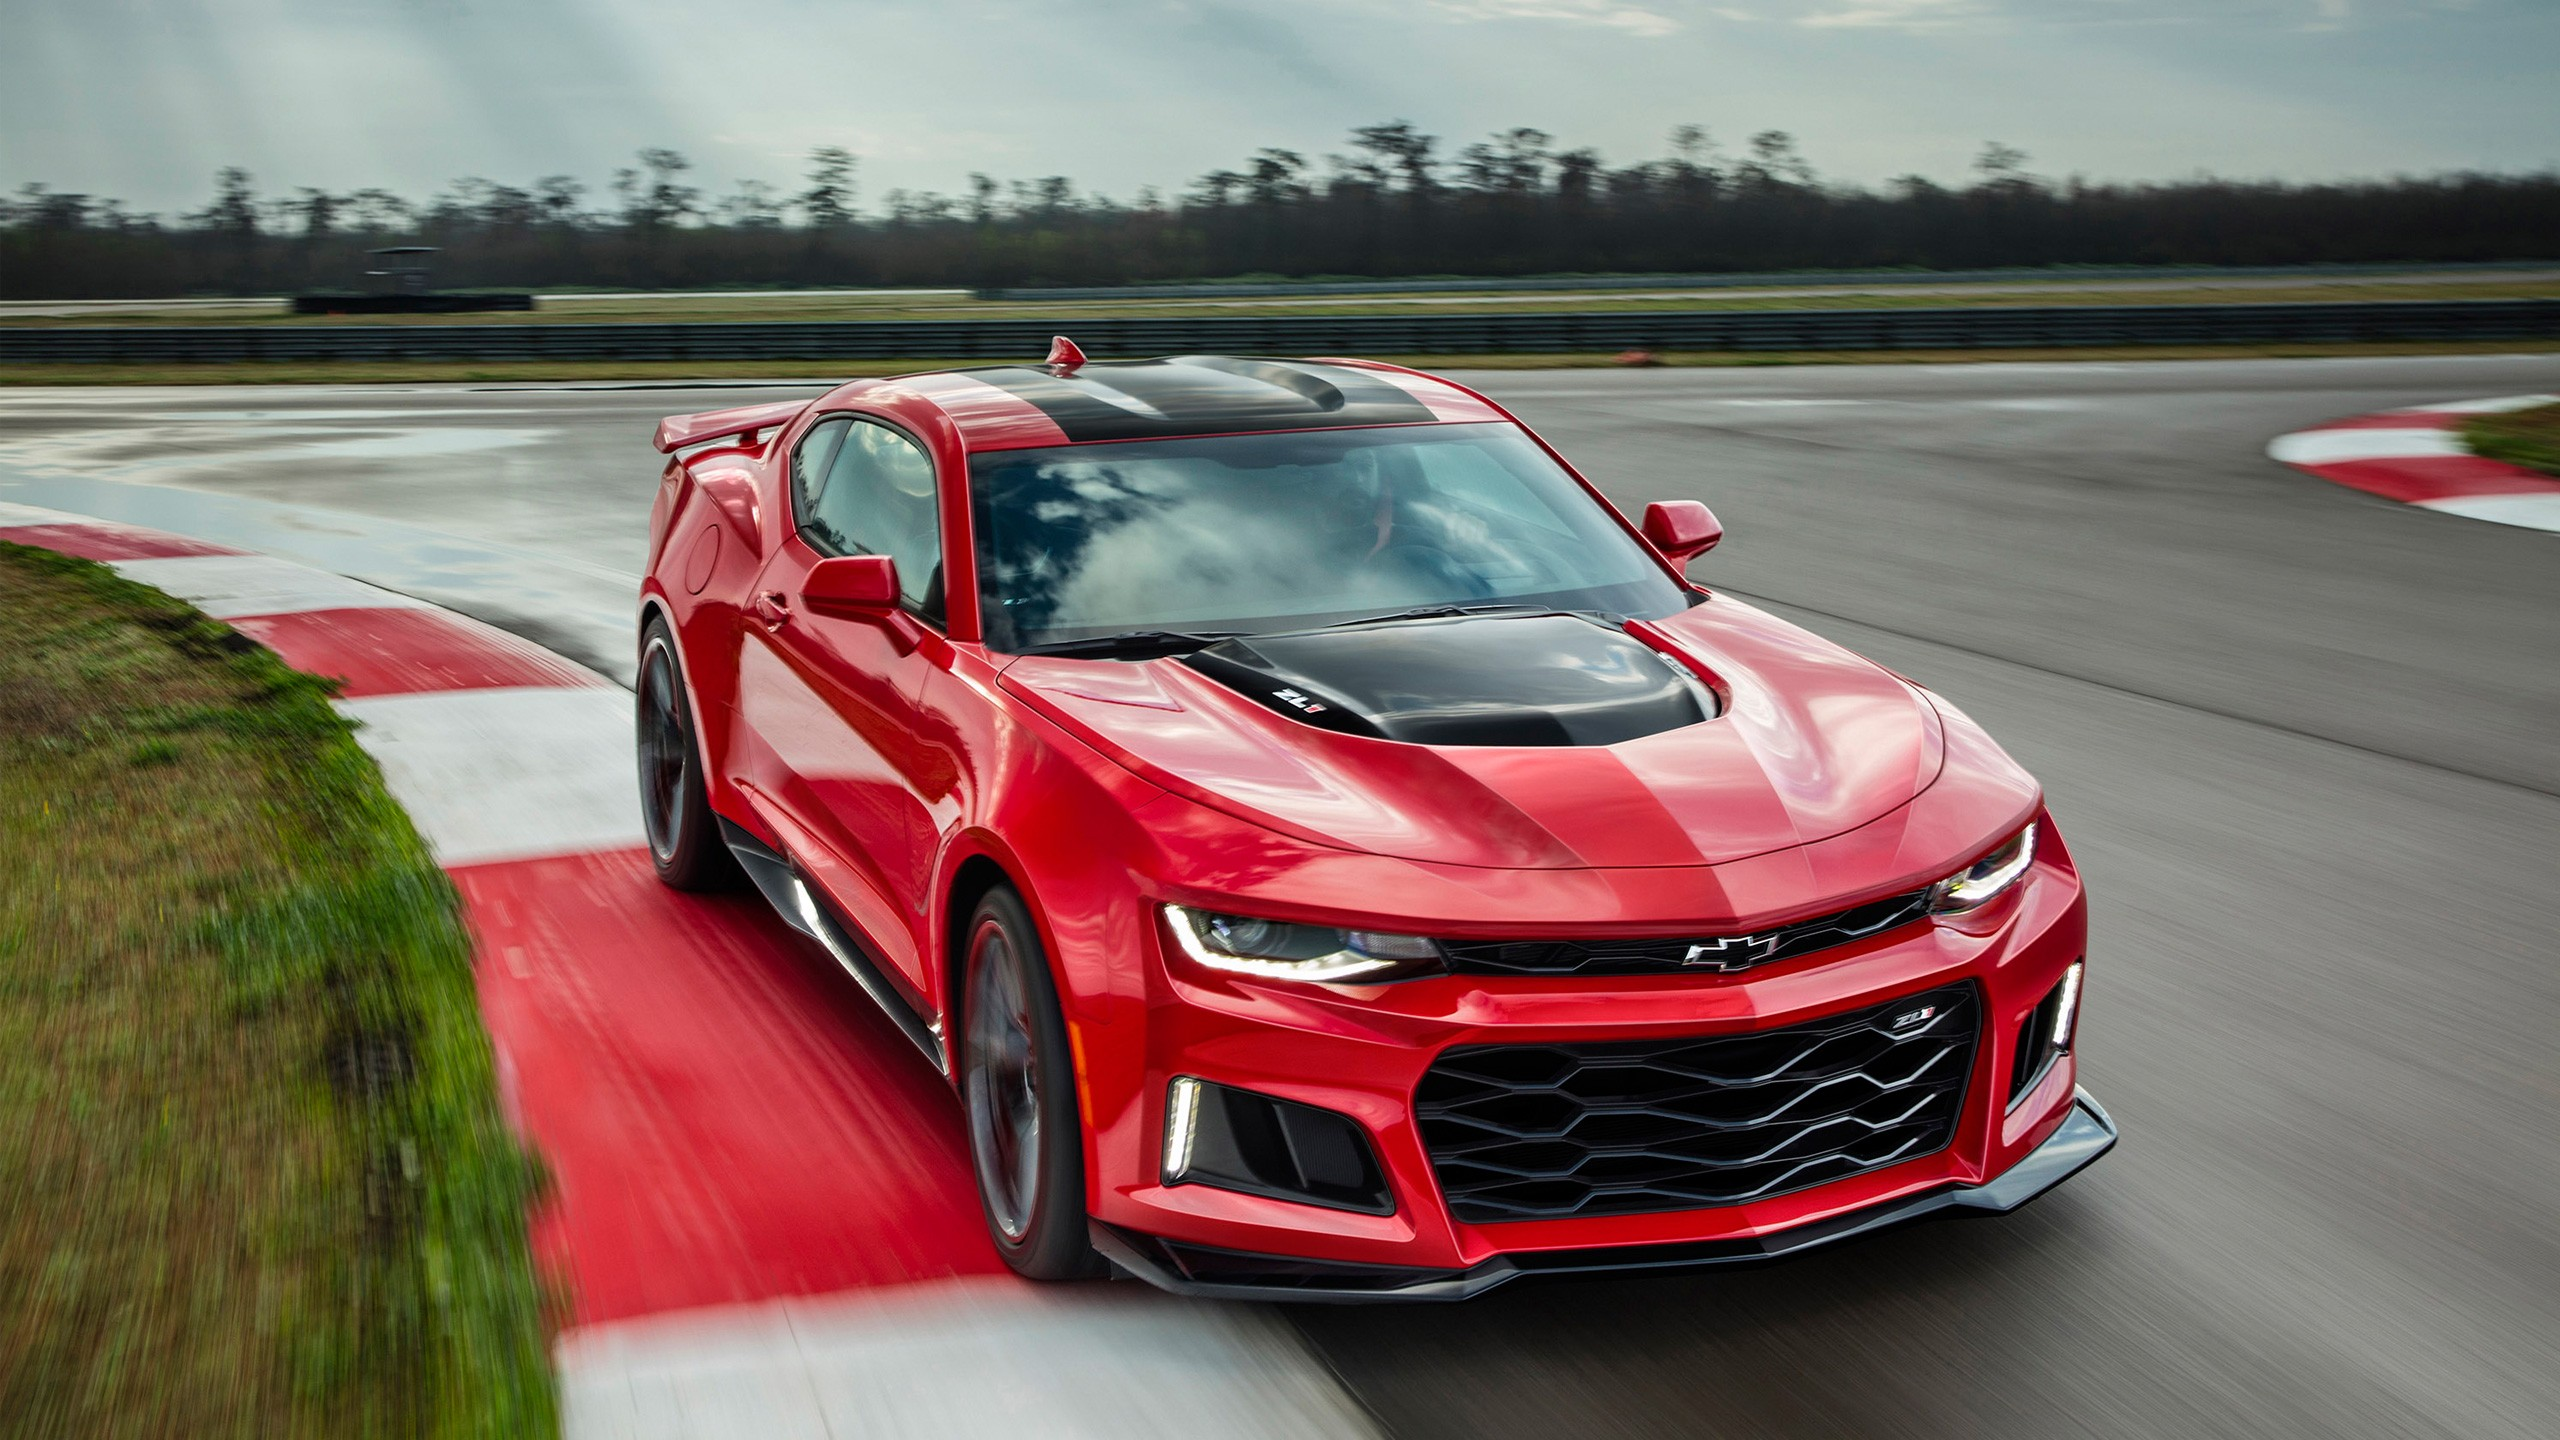 2017 Camaro ZL1 Wallpaper, Awesome 2017 Camaro ZL1 Pictures and ...